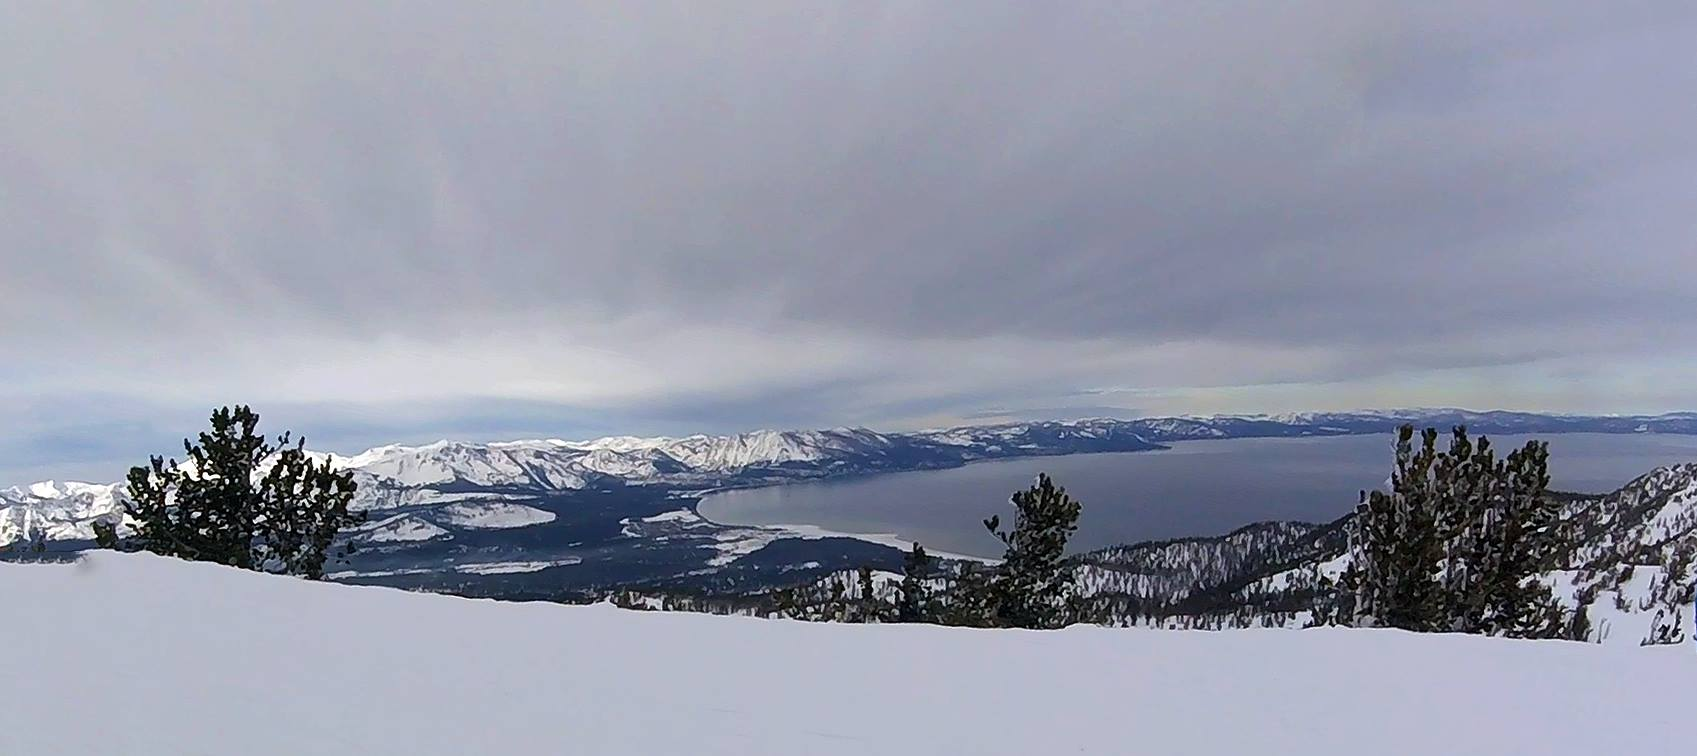 Sergey's Interests -Snowboarding (Tahoe)